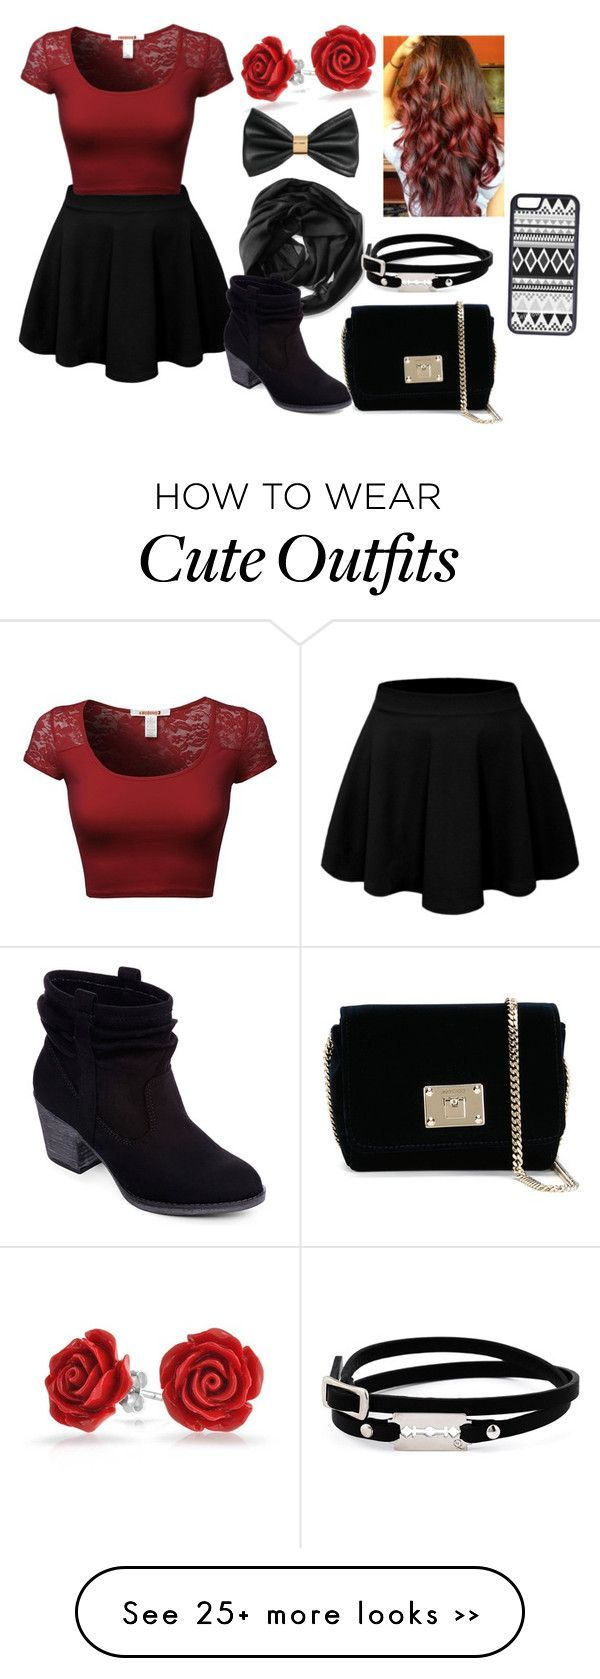 school outfit by mikaangelicalatigay on Polyvore featuring moda, Bling Jewelry, H&M, Calvin Klein, McQ by Alexander McQueen, Rocket Dog, Jimmy Choo e CellPowerCases #outfits4school